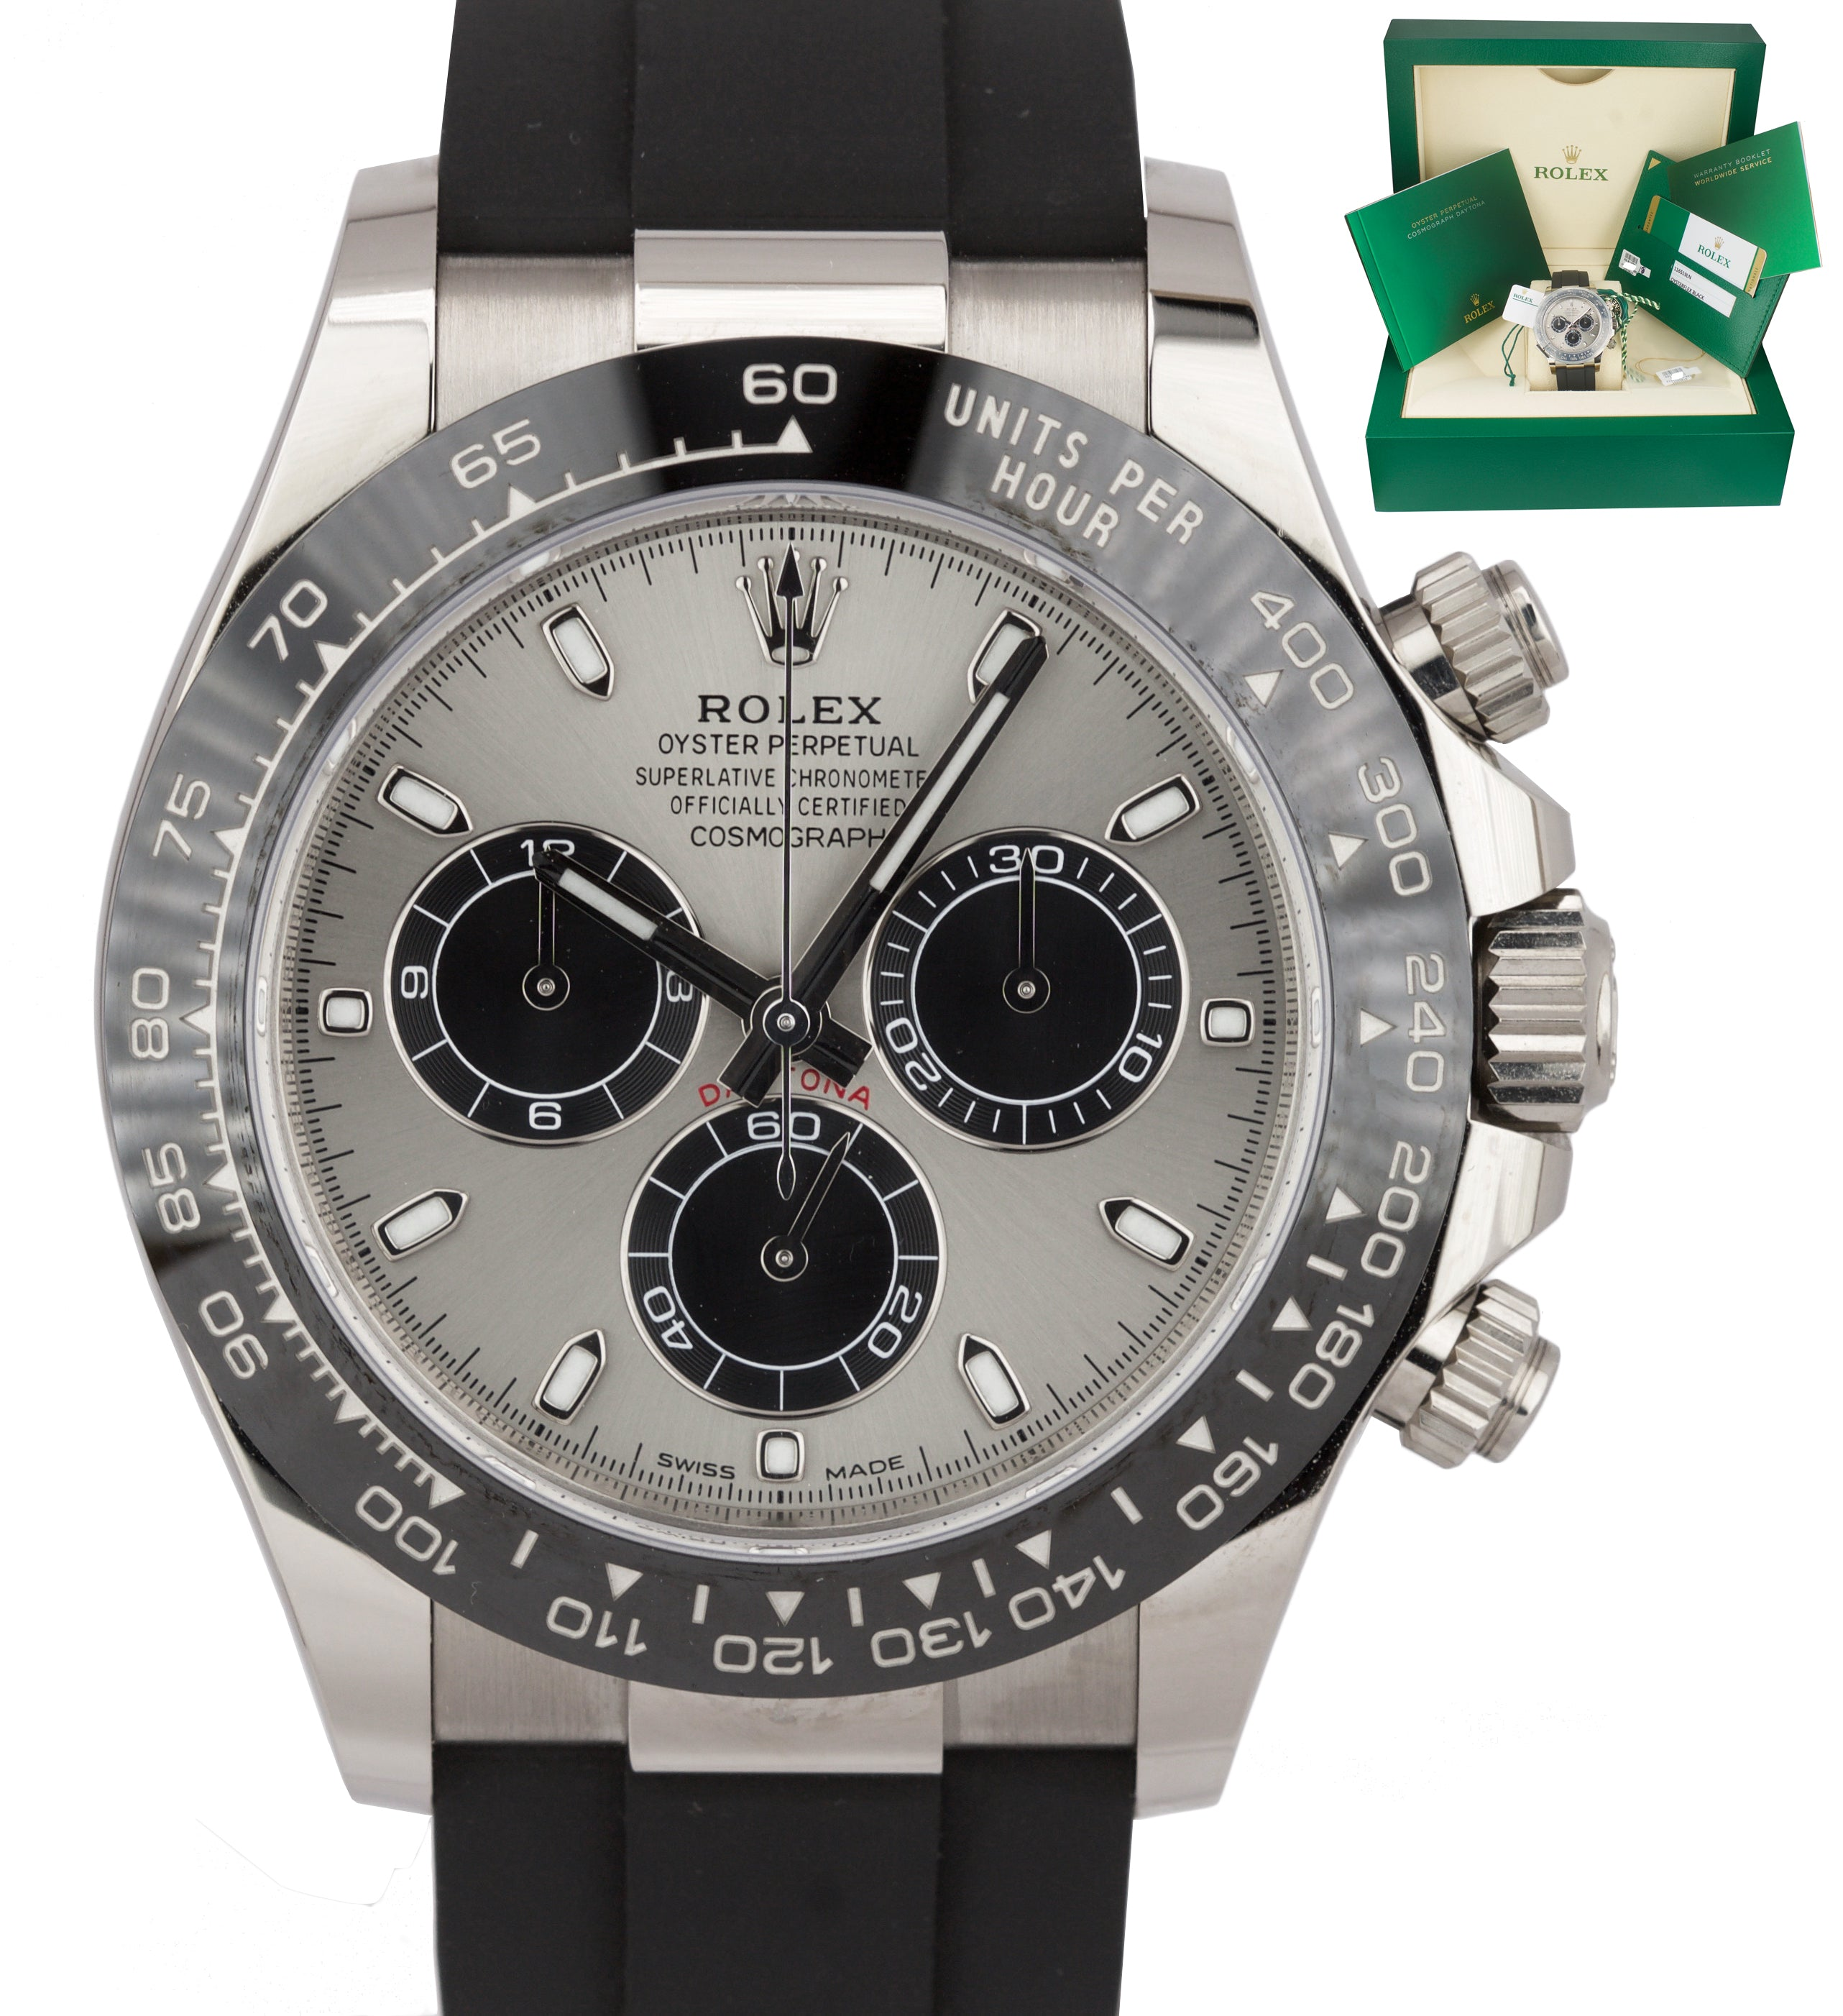 BRAND NEW Rolex Daytona Cosmograph 116519 18K White Gold Chronograph 40mm Watch